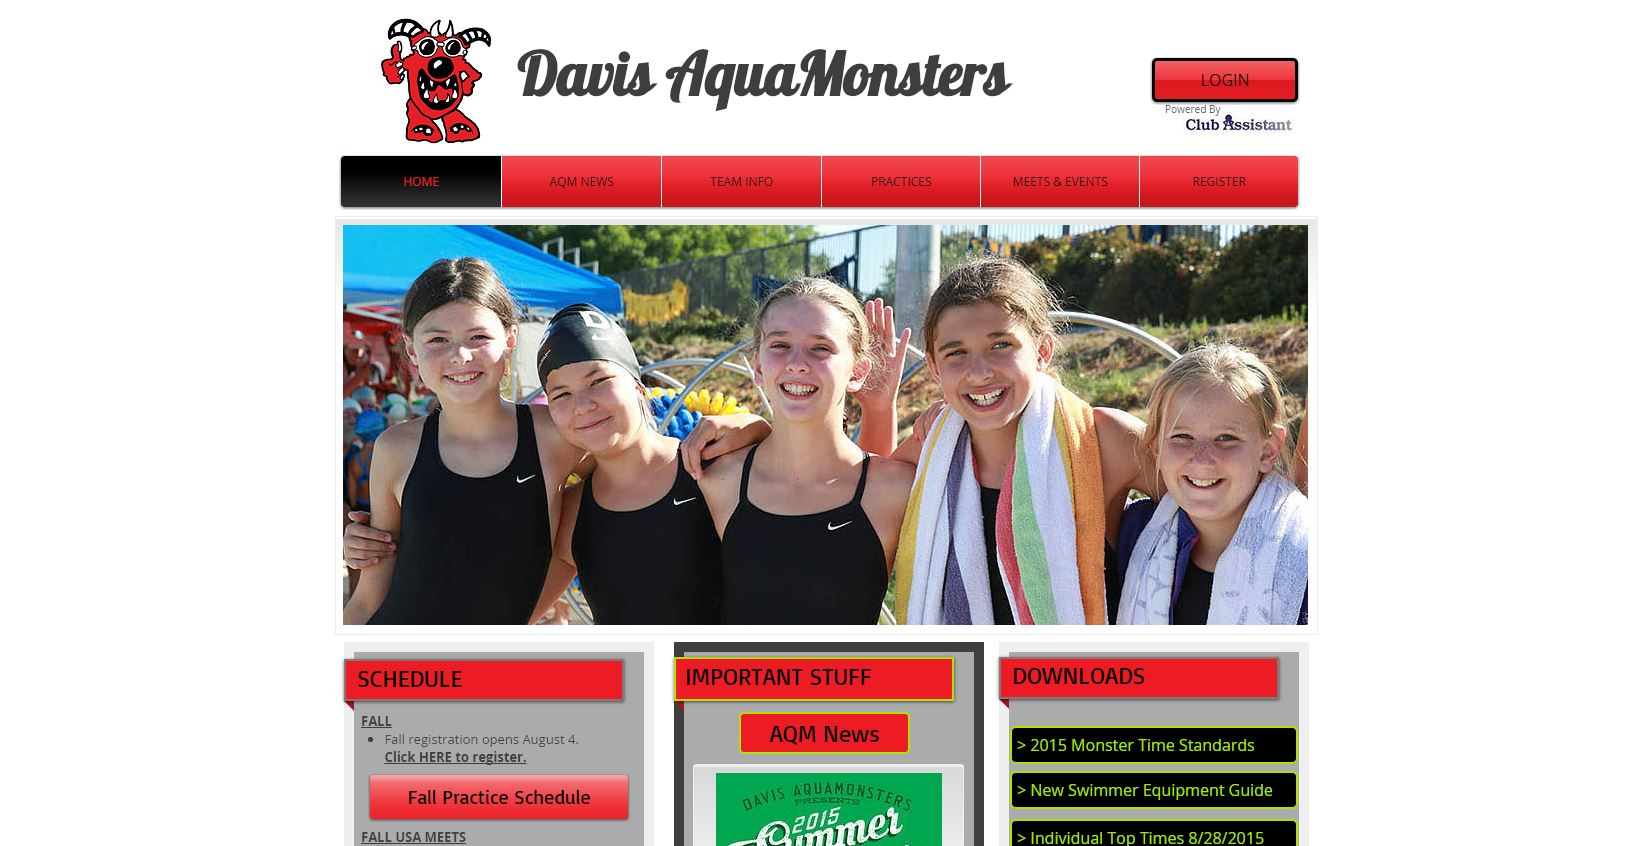 Screenshot of DavisAquamonsters.com